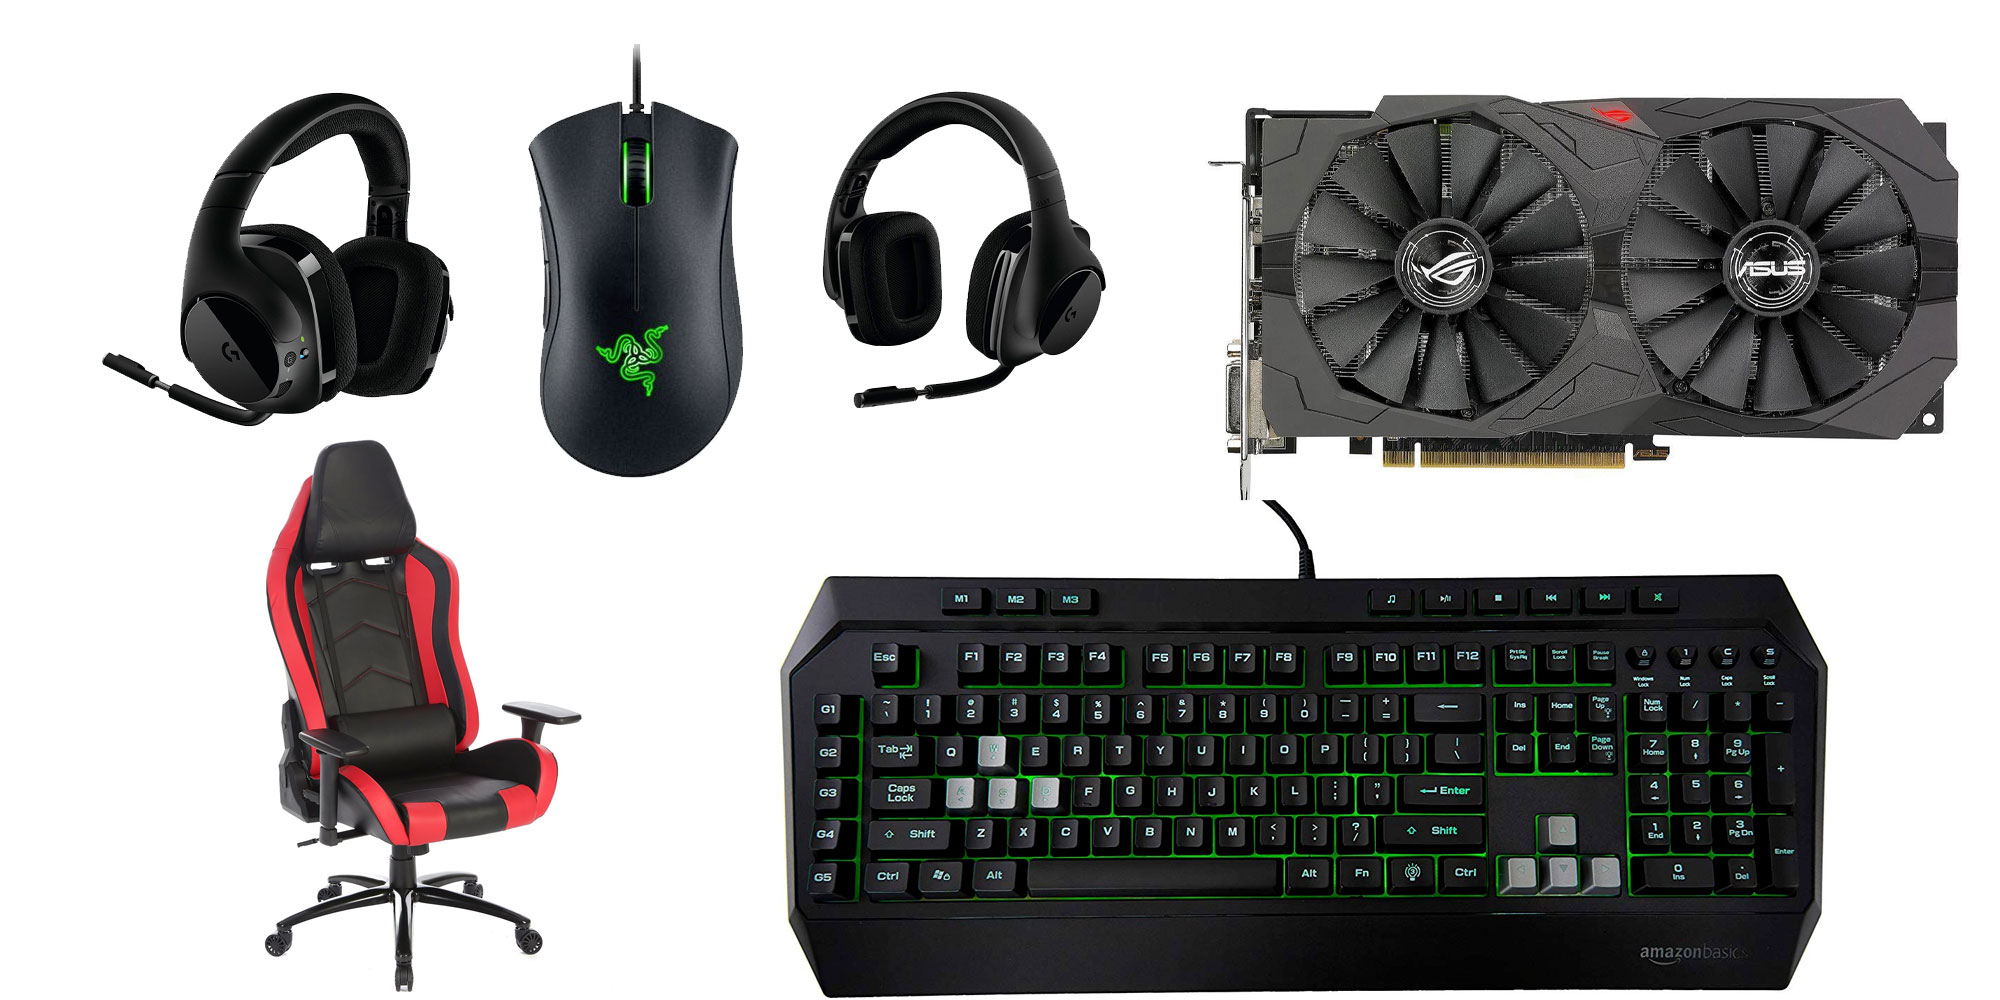 PC Gaming Deals from $16: Logitech wireless headset, ergonomic chair, RX 570 GPU, more